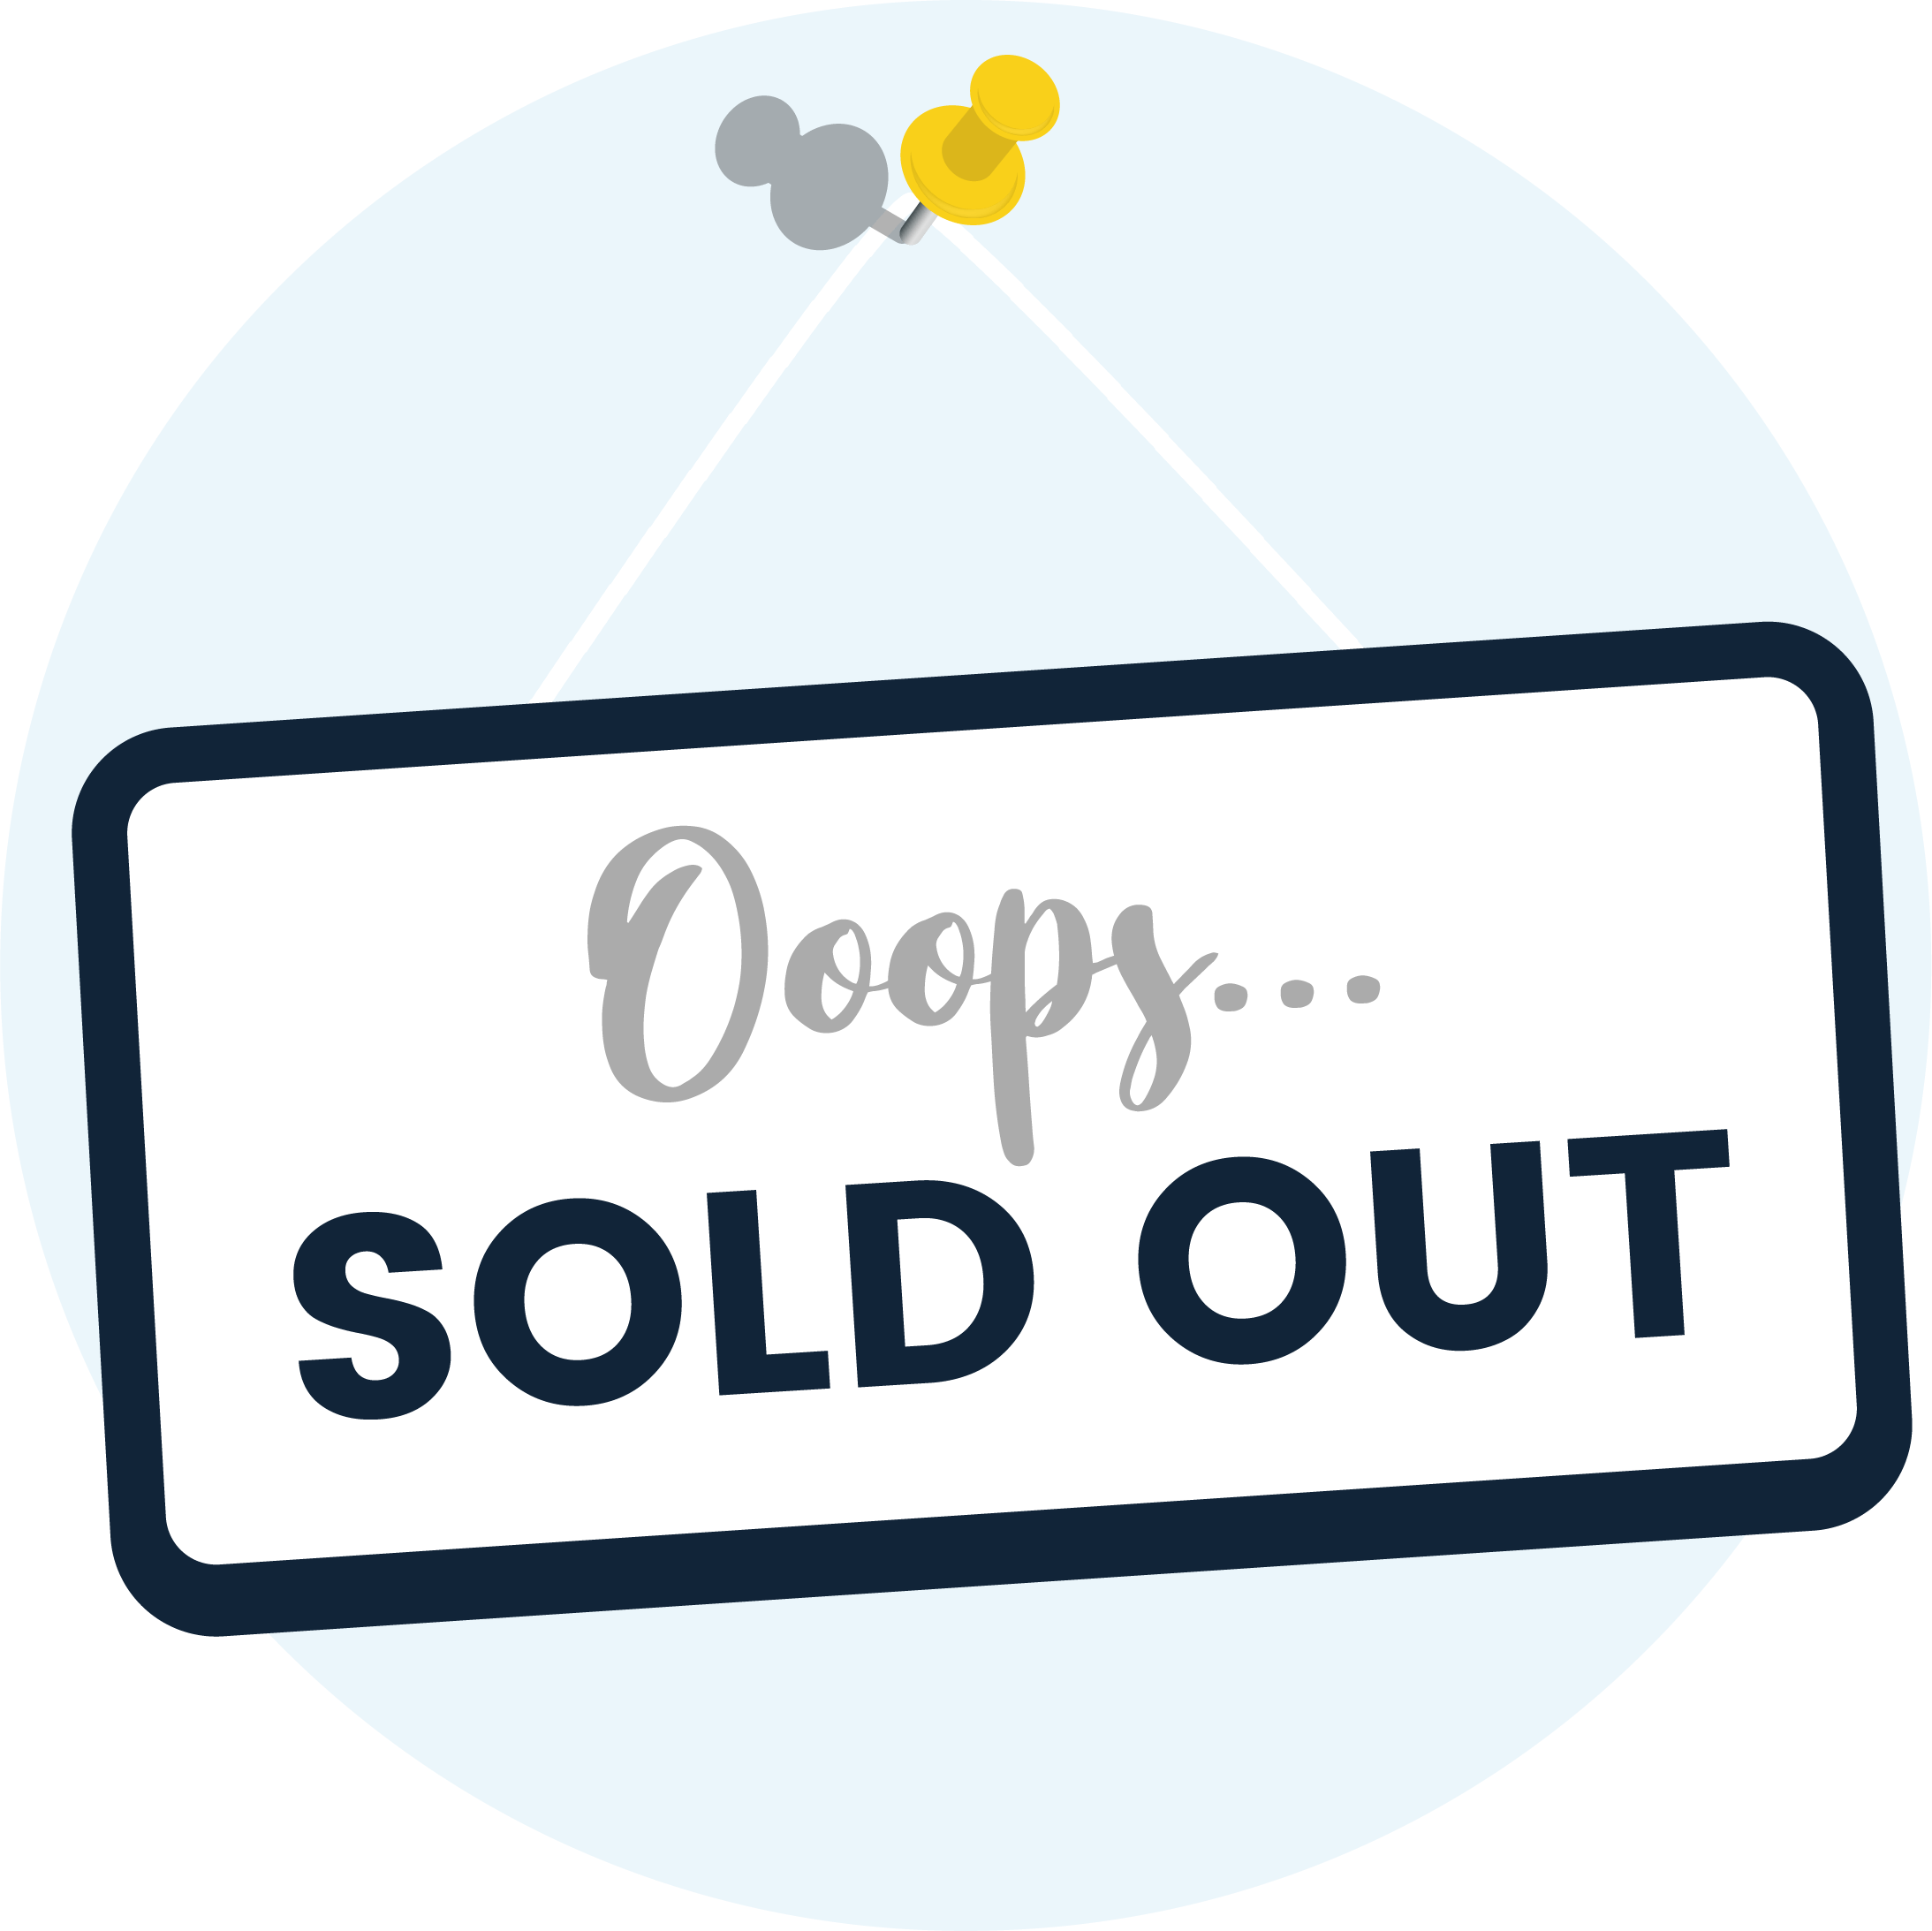 Sold-out - We have already rented all the short term rentals Dublin.